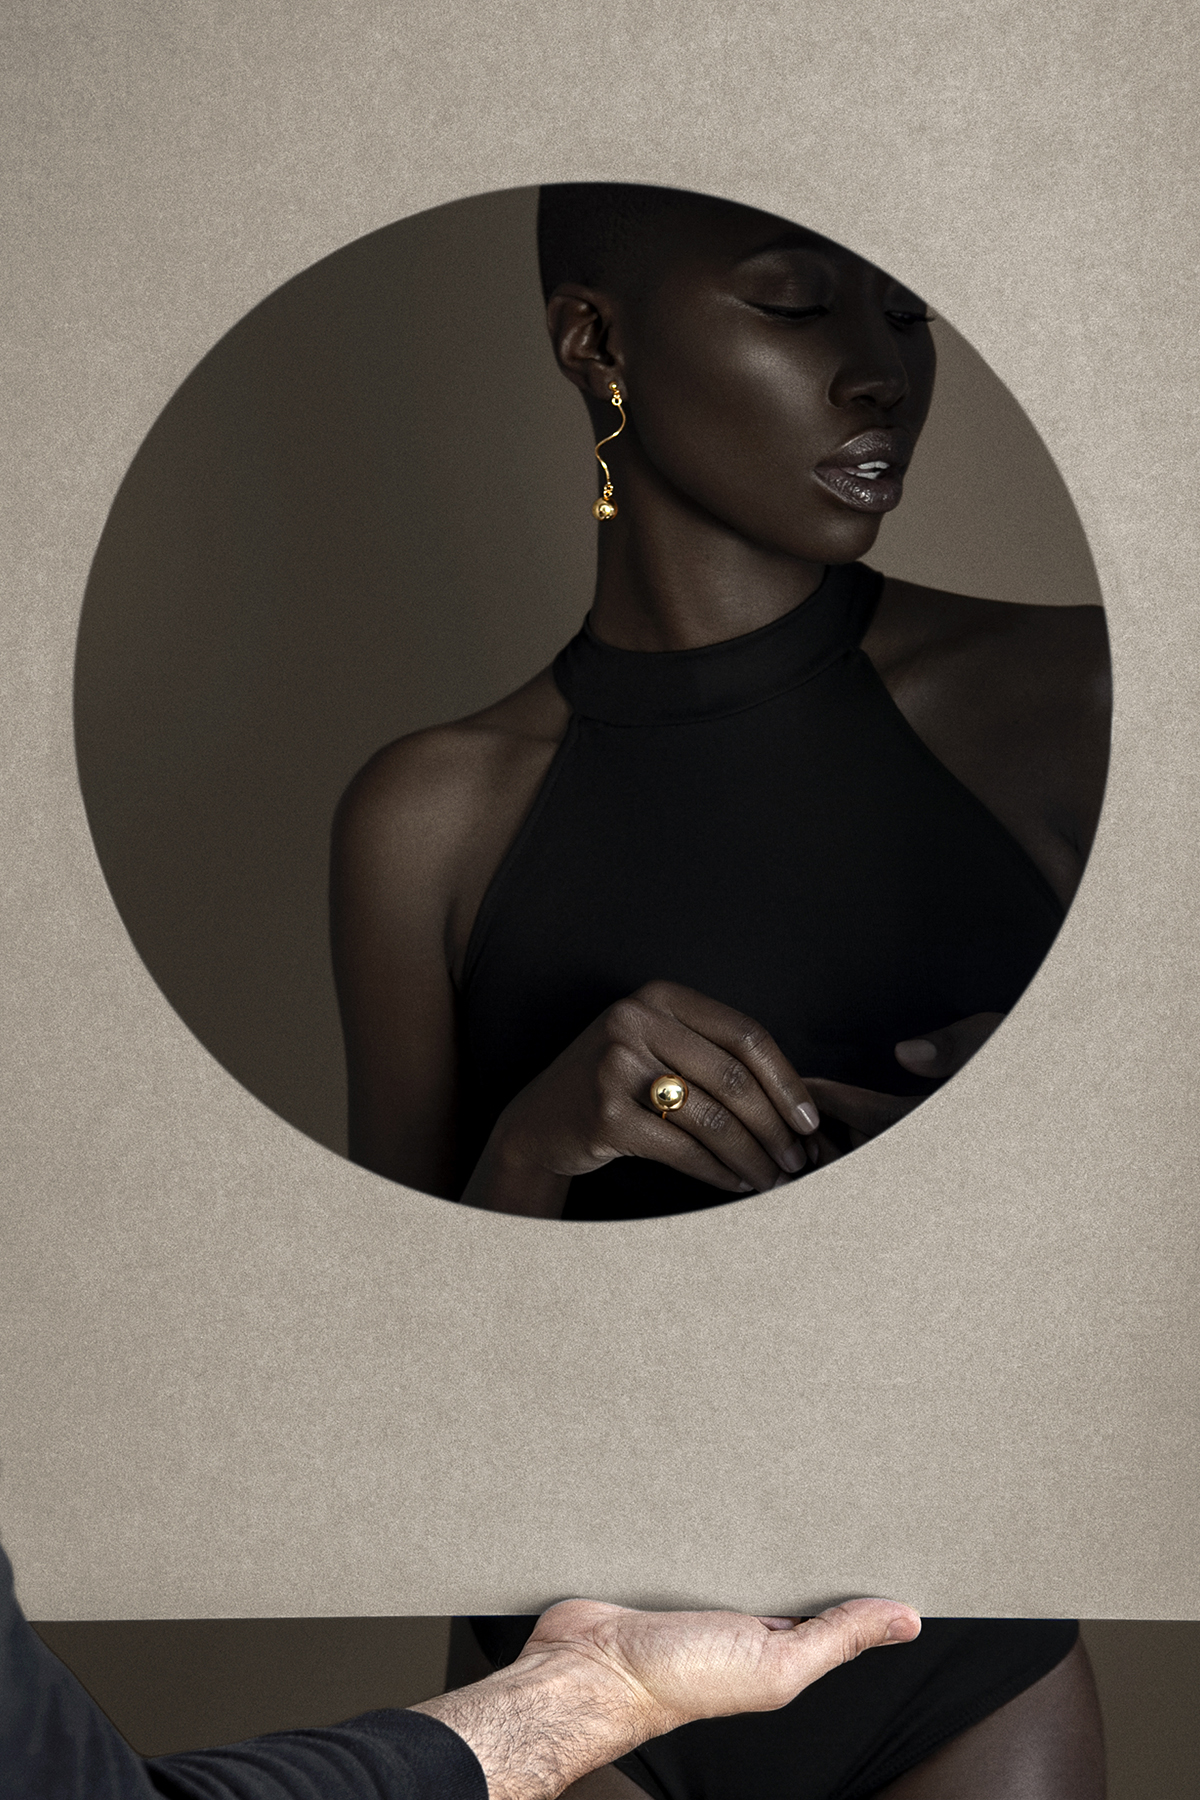 giannina oteto for nashira arno jewelry nyc based fashion latin american designer dominican republic statement gold earrings ring bold spiral sphere shop online editorial pf19 circle .jpg